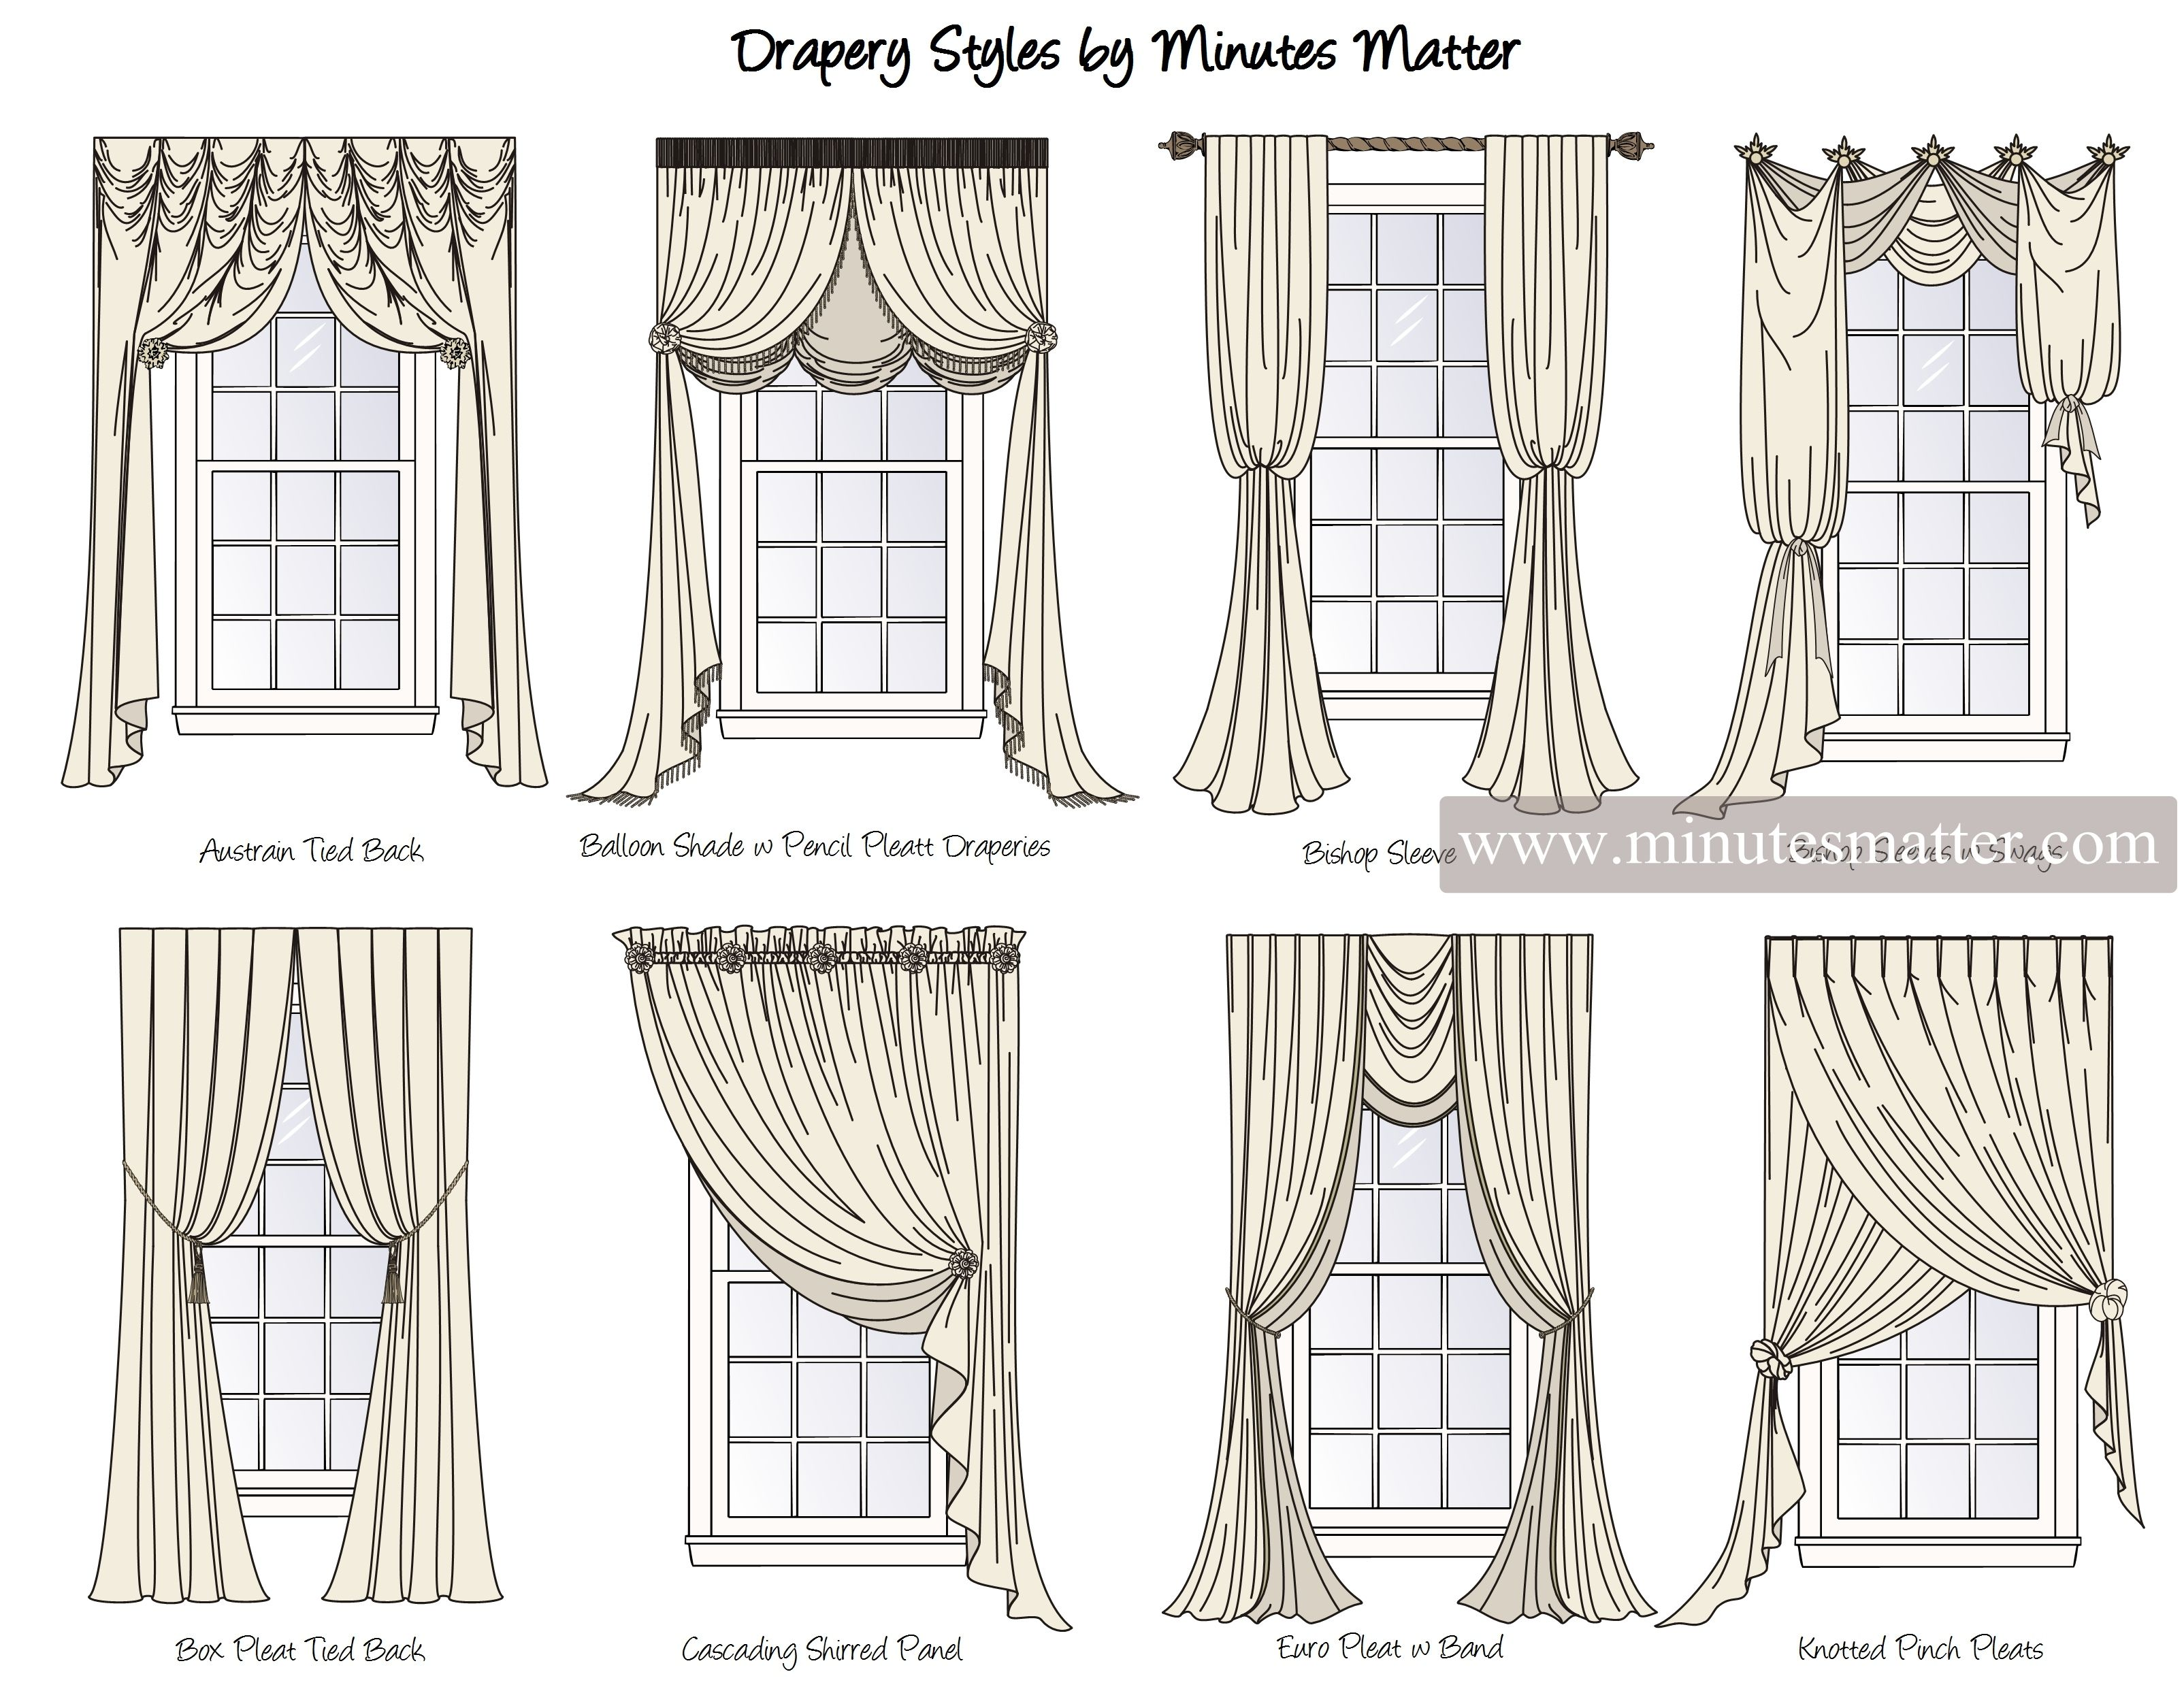 Drapery Style Images From Minutes Matter Studio Graphic Software Www Minutesmatter Com Drapes Curtains Living Room Dining Room Curtains Drapes Curtains Types of curtains and draperies